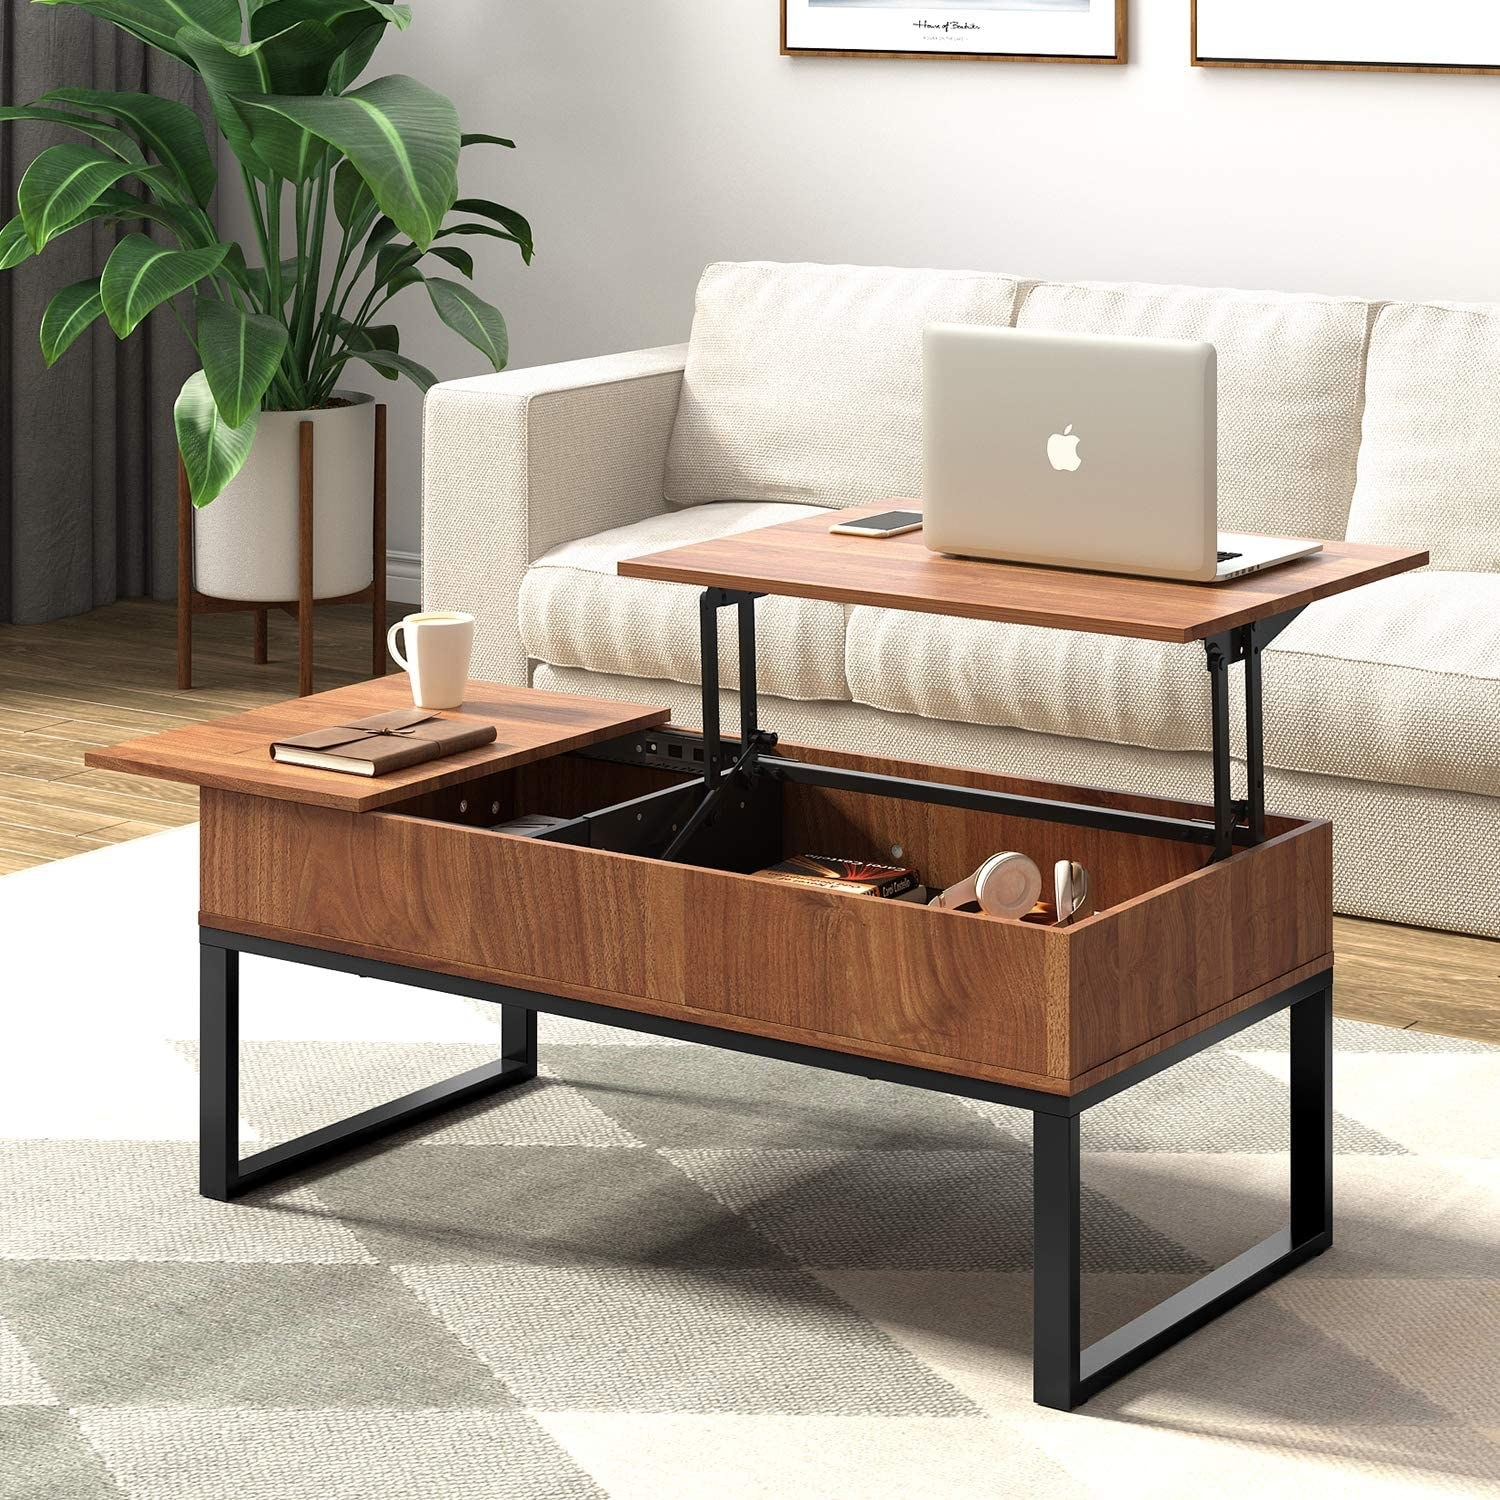 The minimalist coffee table is made with square metal legs and a wood top. The top of the table can be lifted and turned into an upright desk with storage beneath.